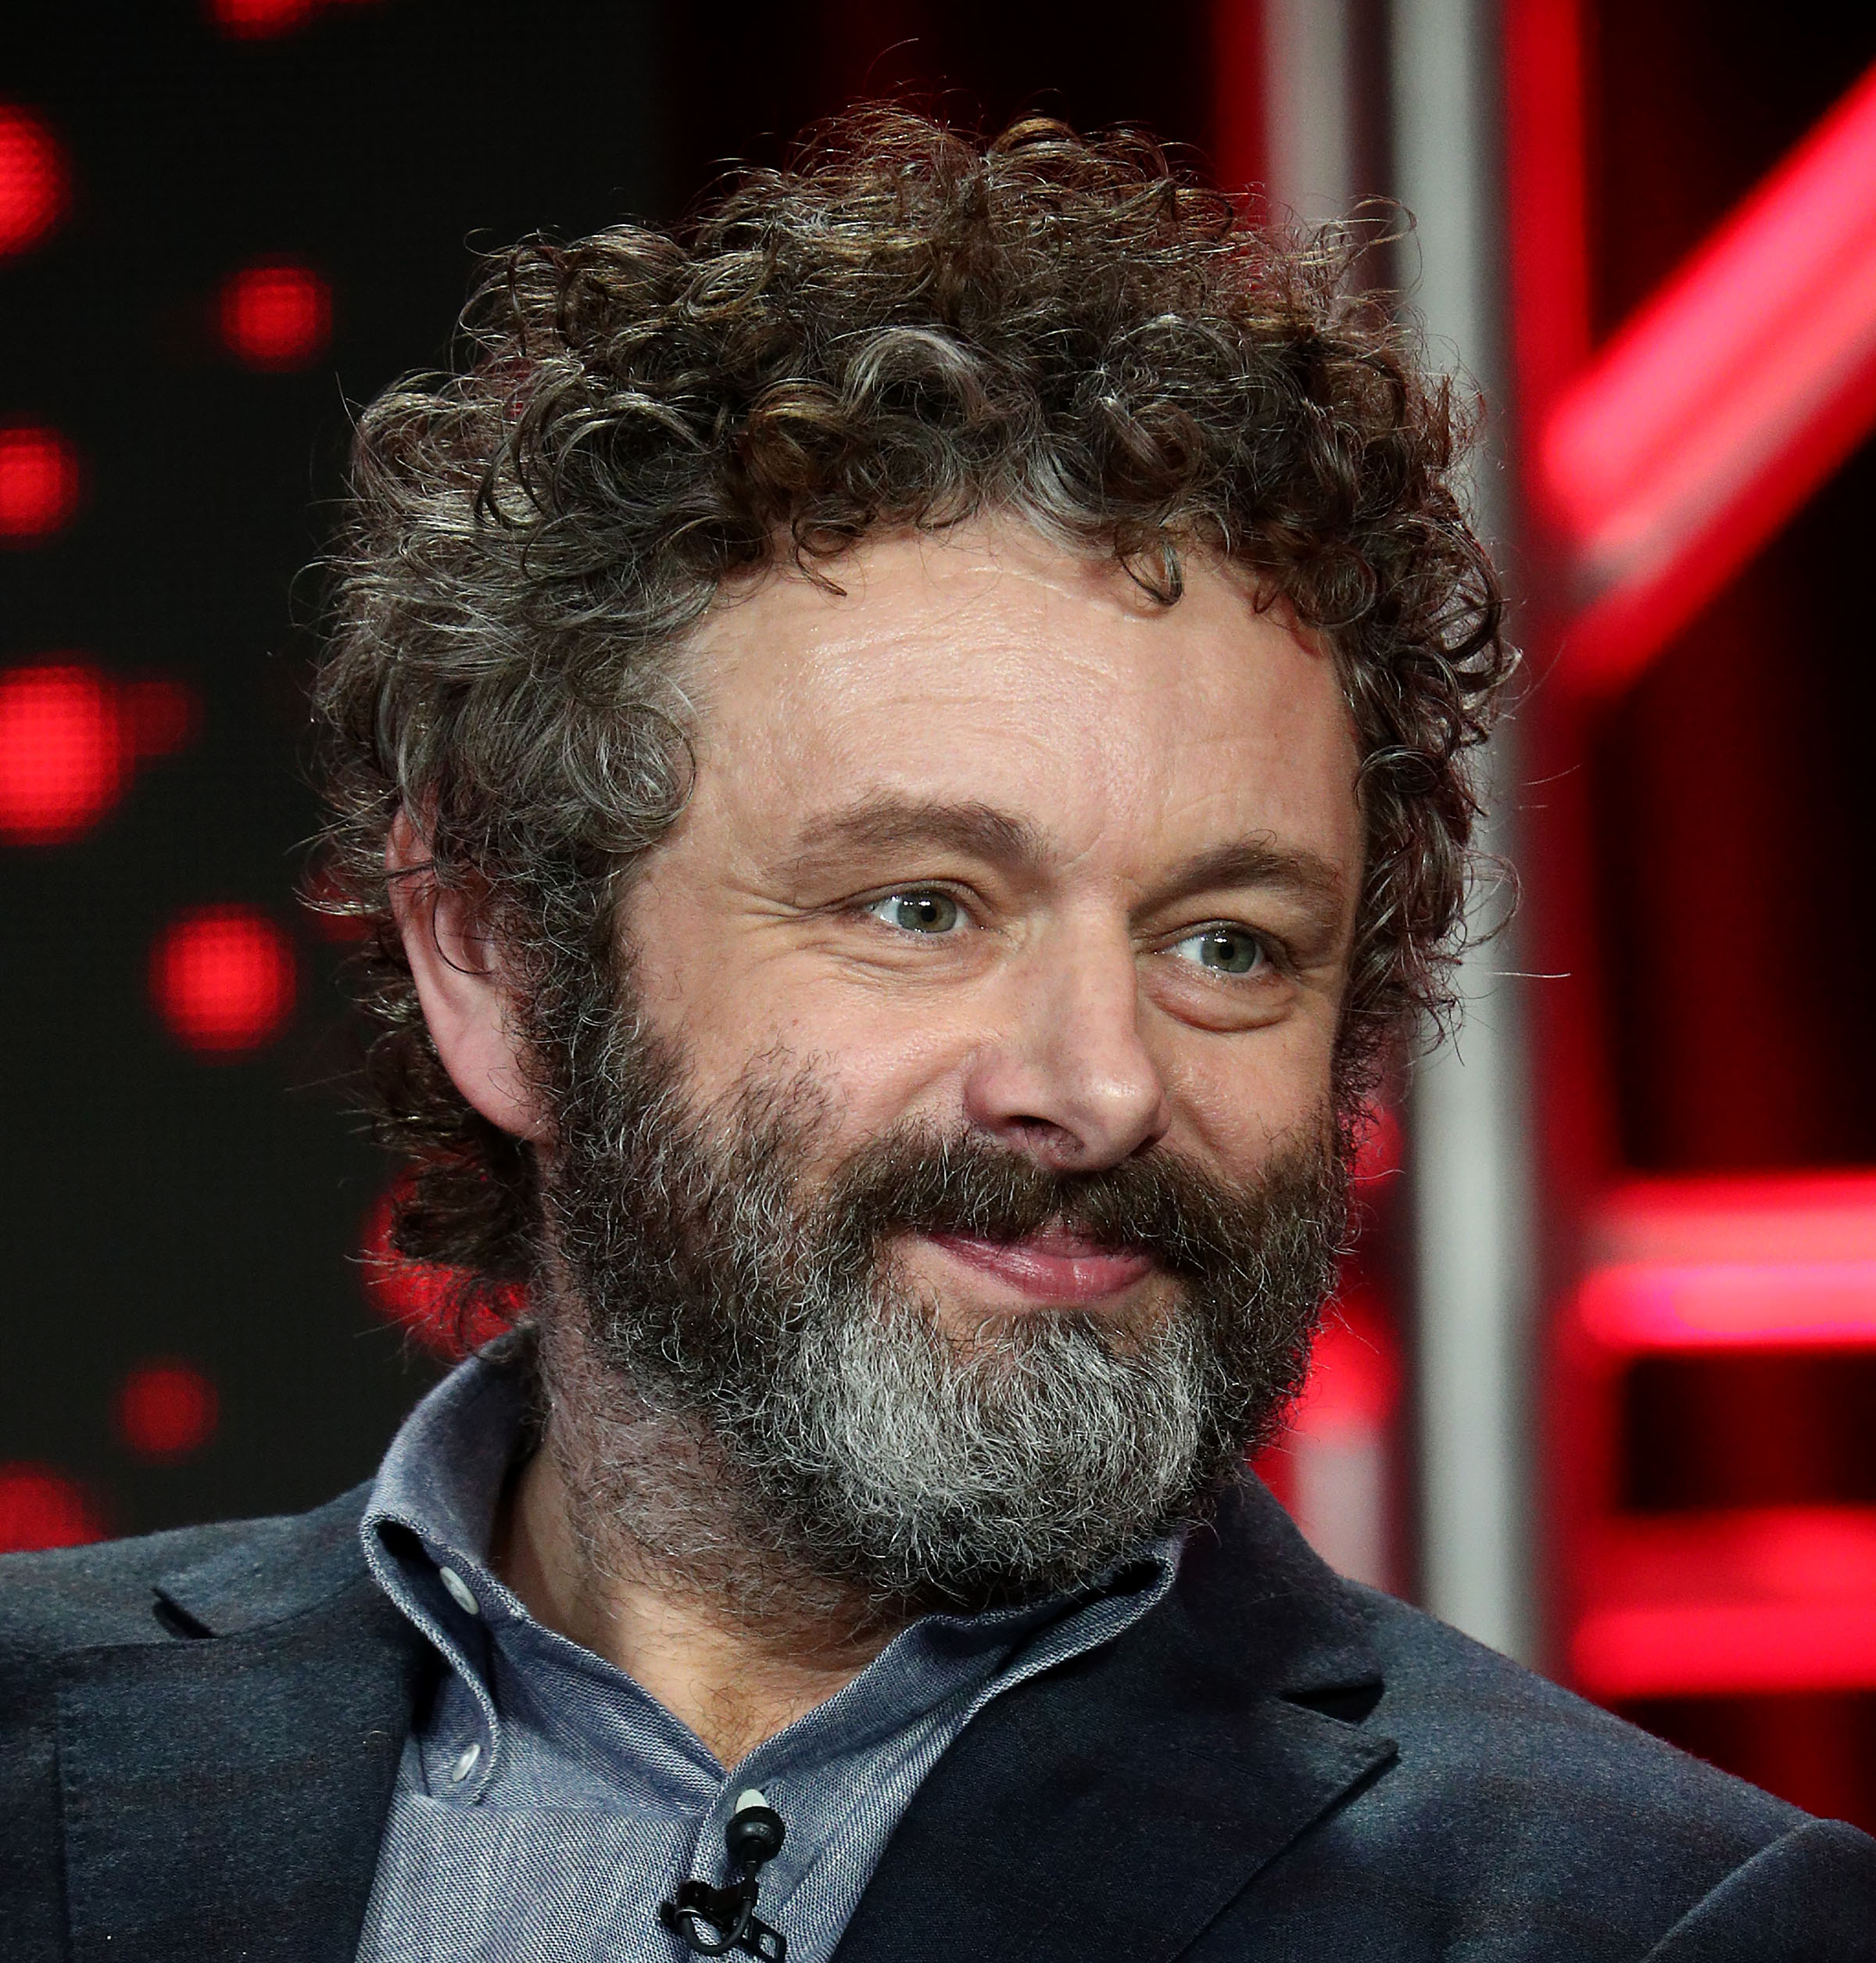 Michael Sheen of the television show 'The Good Fight' speaks during the CBS segment of the 2019 Winter Television Critics Association Press Tour at The Langham Huntington, Pasadena on January 30, 2019 in Pasadena, California. (Getty Images)